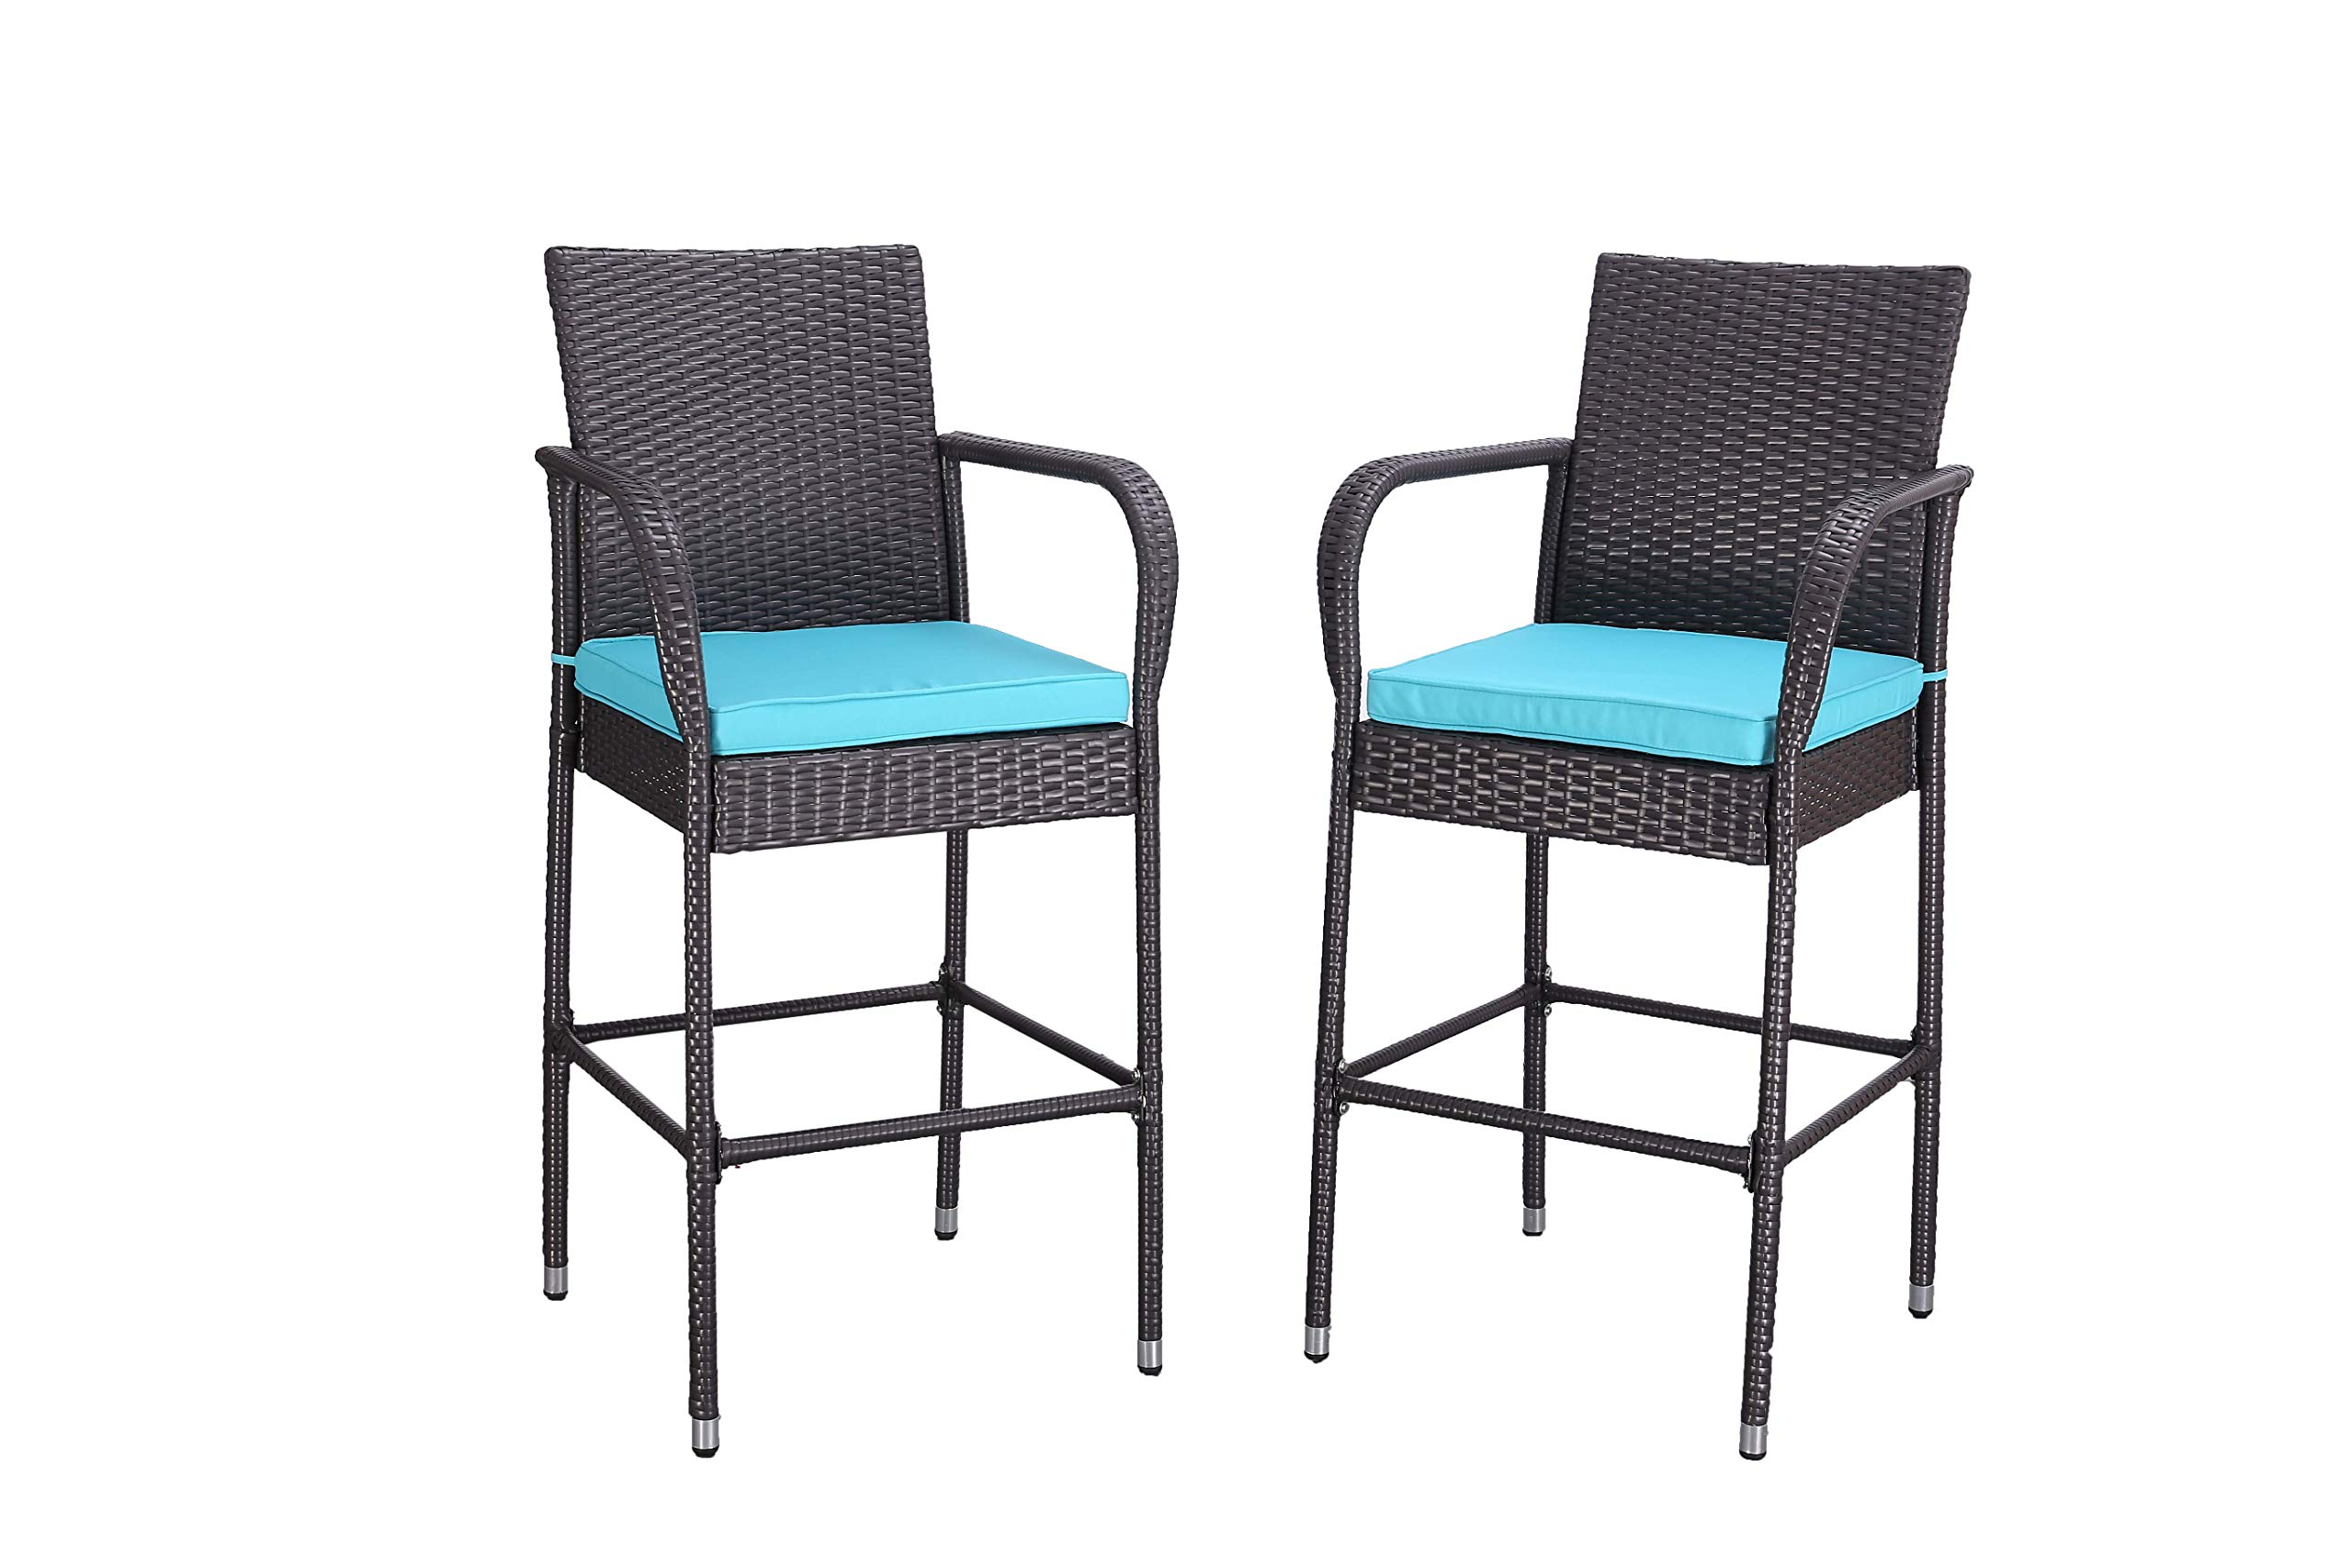 HTTH 9 Pieces Patio Bar Stools All-Weather Wicker Outdoor Furniture Chair,  Armrest Bar Chairs Footrest Barstools (Turquoise)